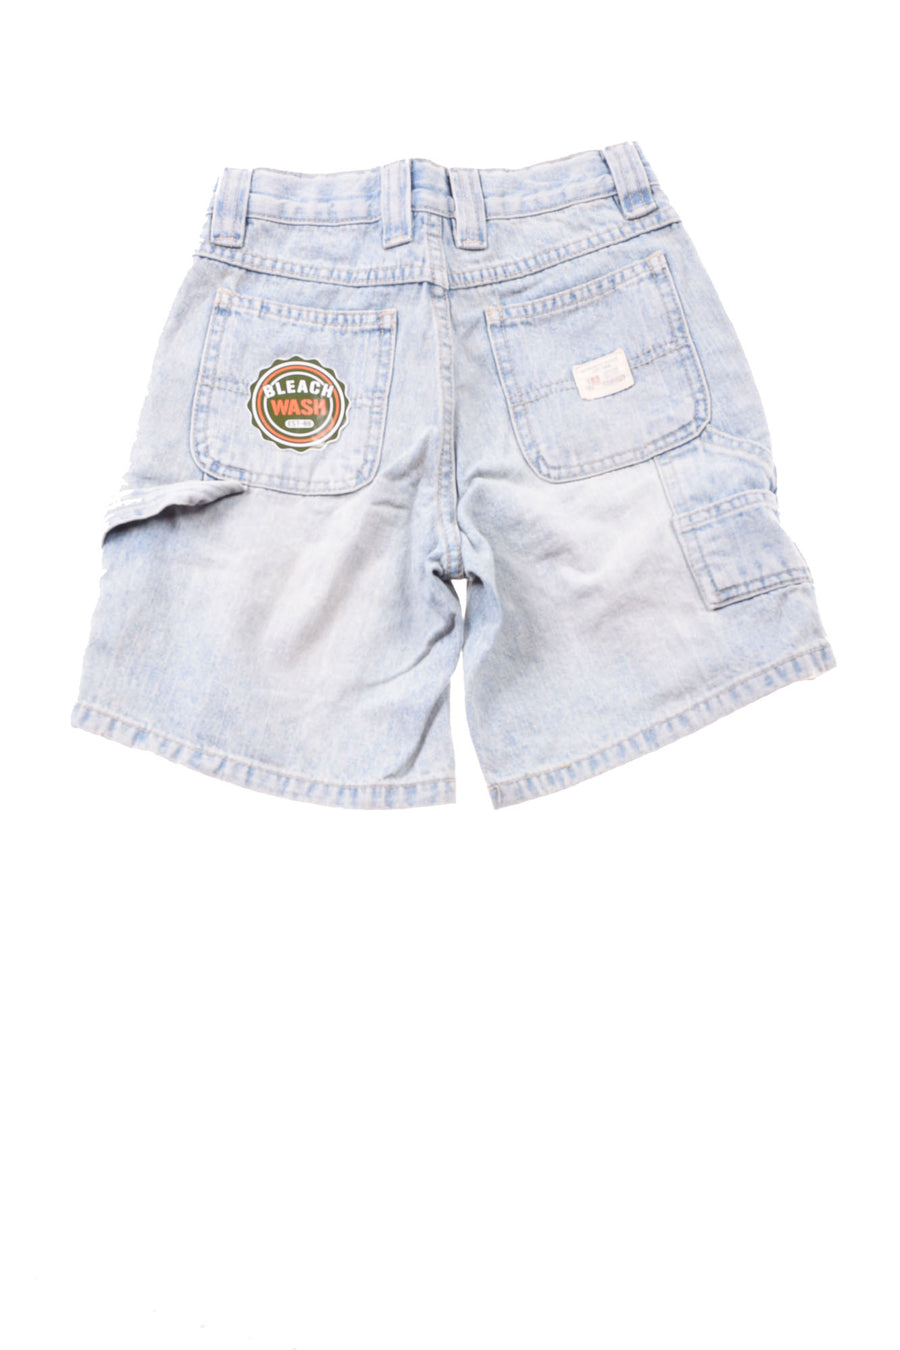 NEW The Children's Place Toddler Boy's Shorts 5 Blue